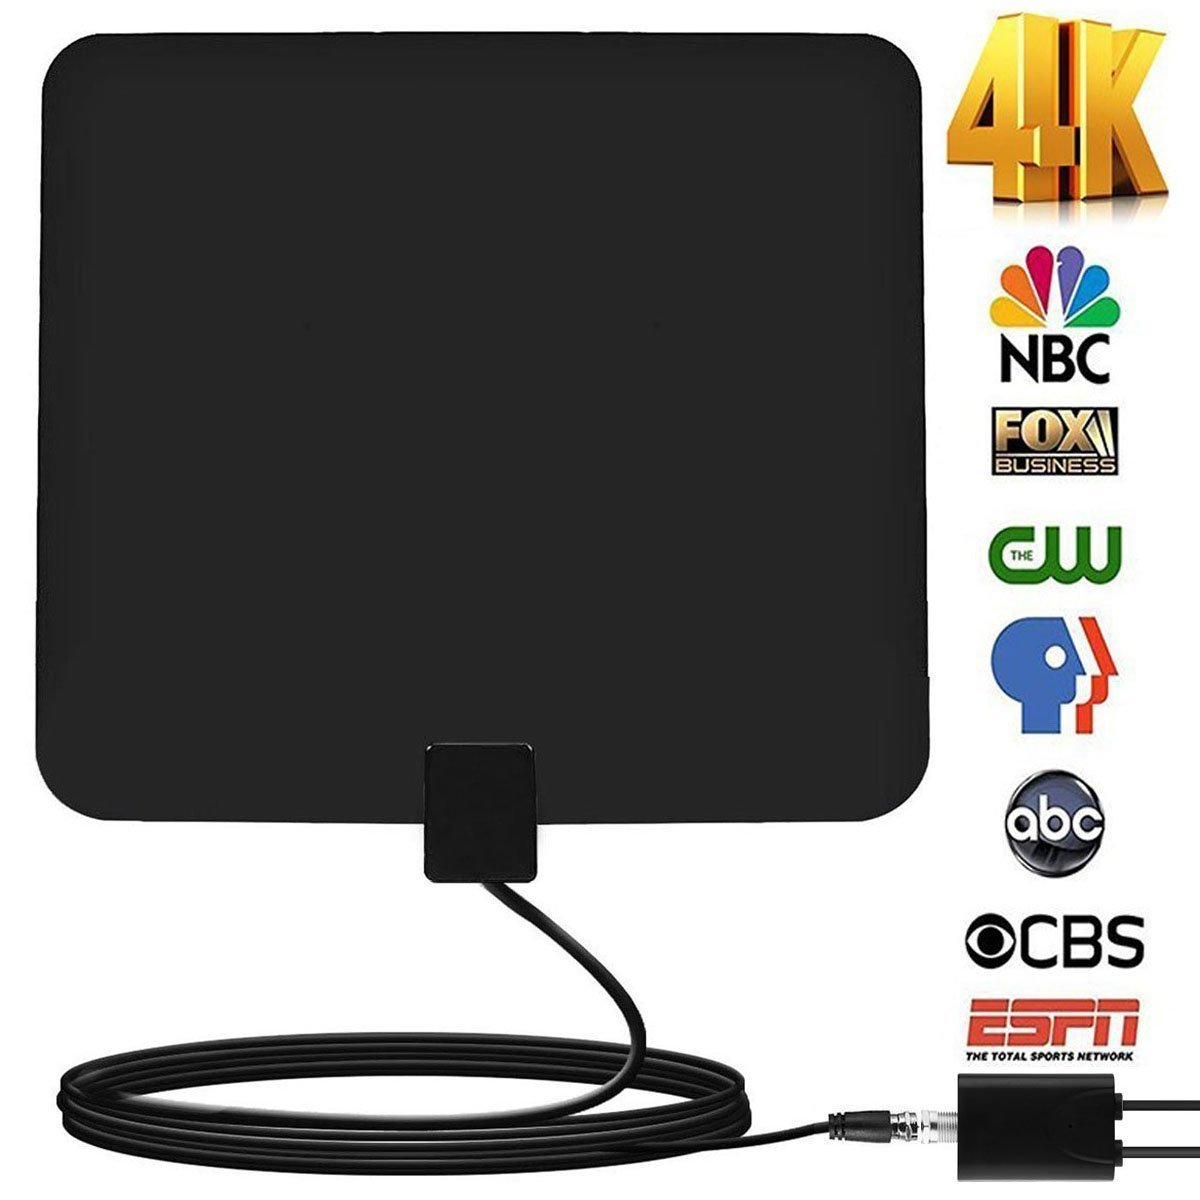 grell 60-100Miles Indoor HDTV Antenna - Upgraded Digital TV Antenna with Amplifier TV Antenna Indoor High Reception for Free Channels Gain 4K 1080P with 12ft Coax Cable